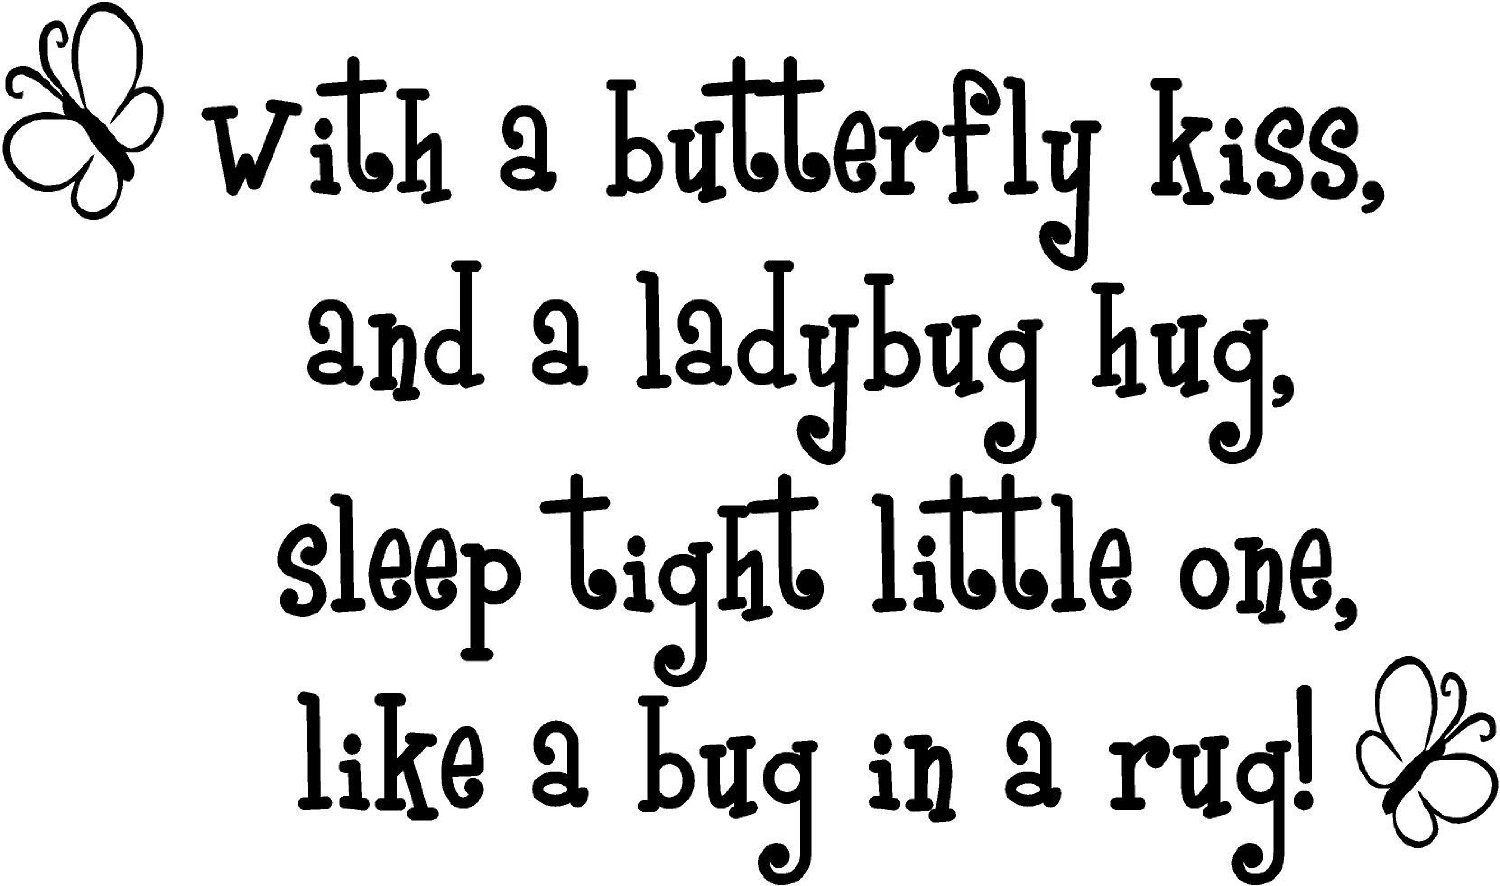 Amazon.com : With a butterfly kiss, and a ladybug hug, sleep tight little one, like a bug in a rug! wall art wall sayings : Baby